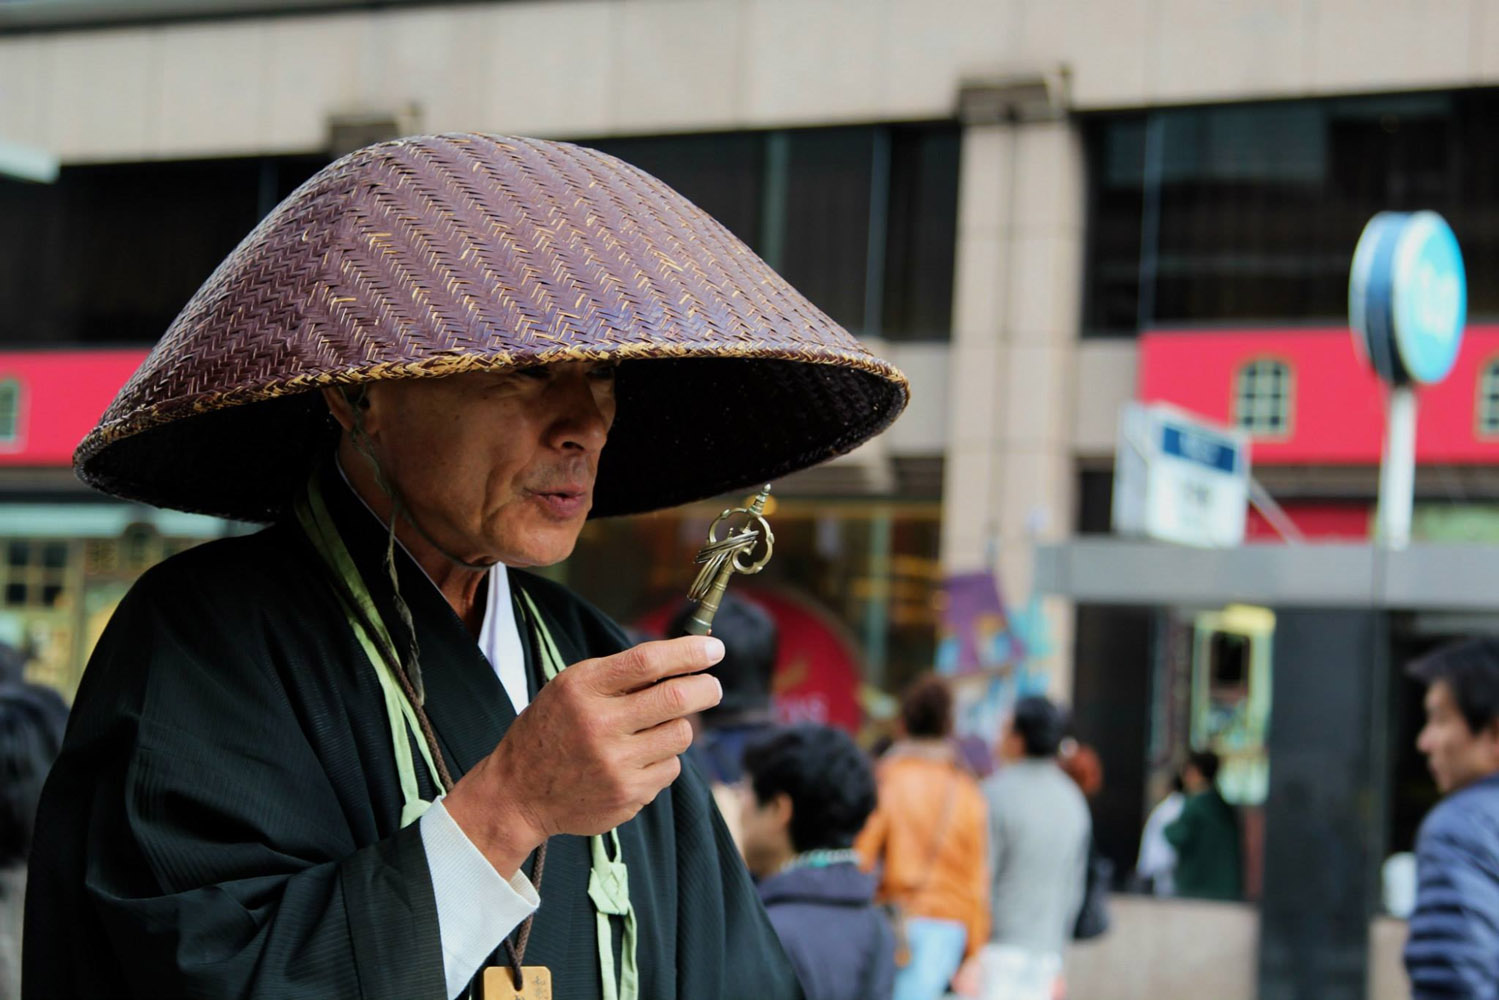 Zen Buddhist monk on the streets of Ginza, Tokyo